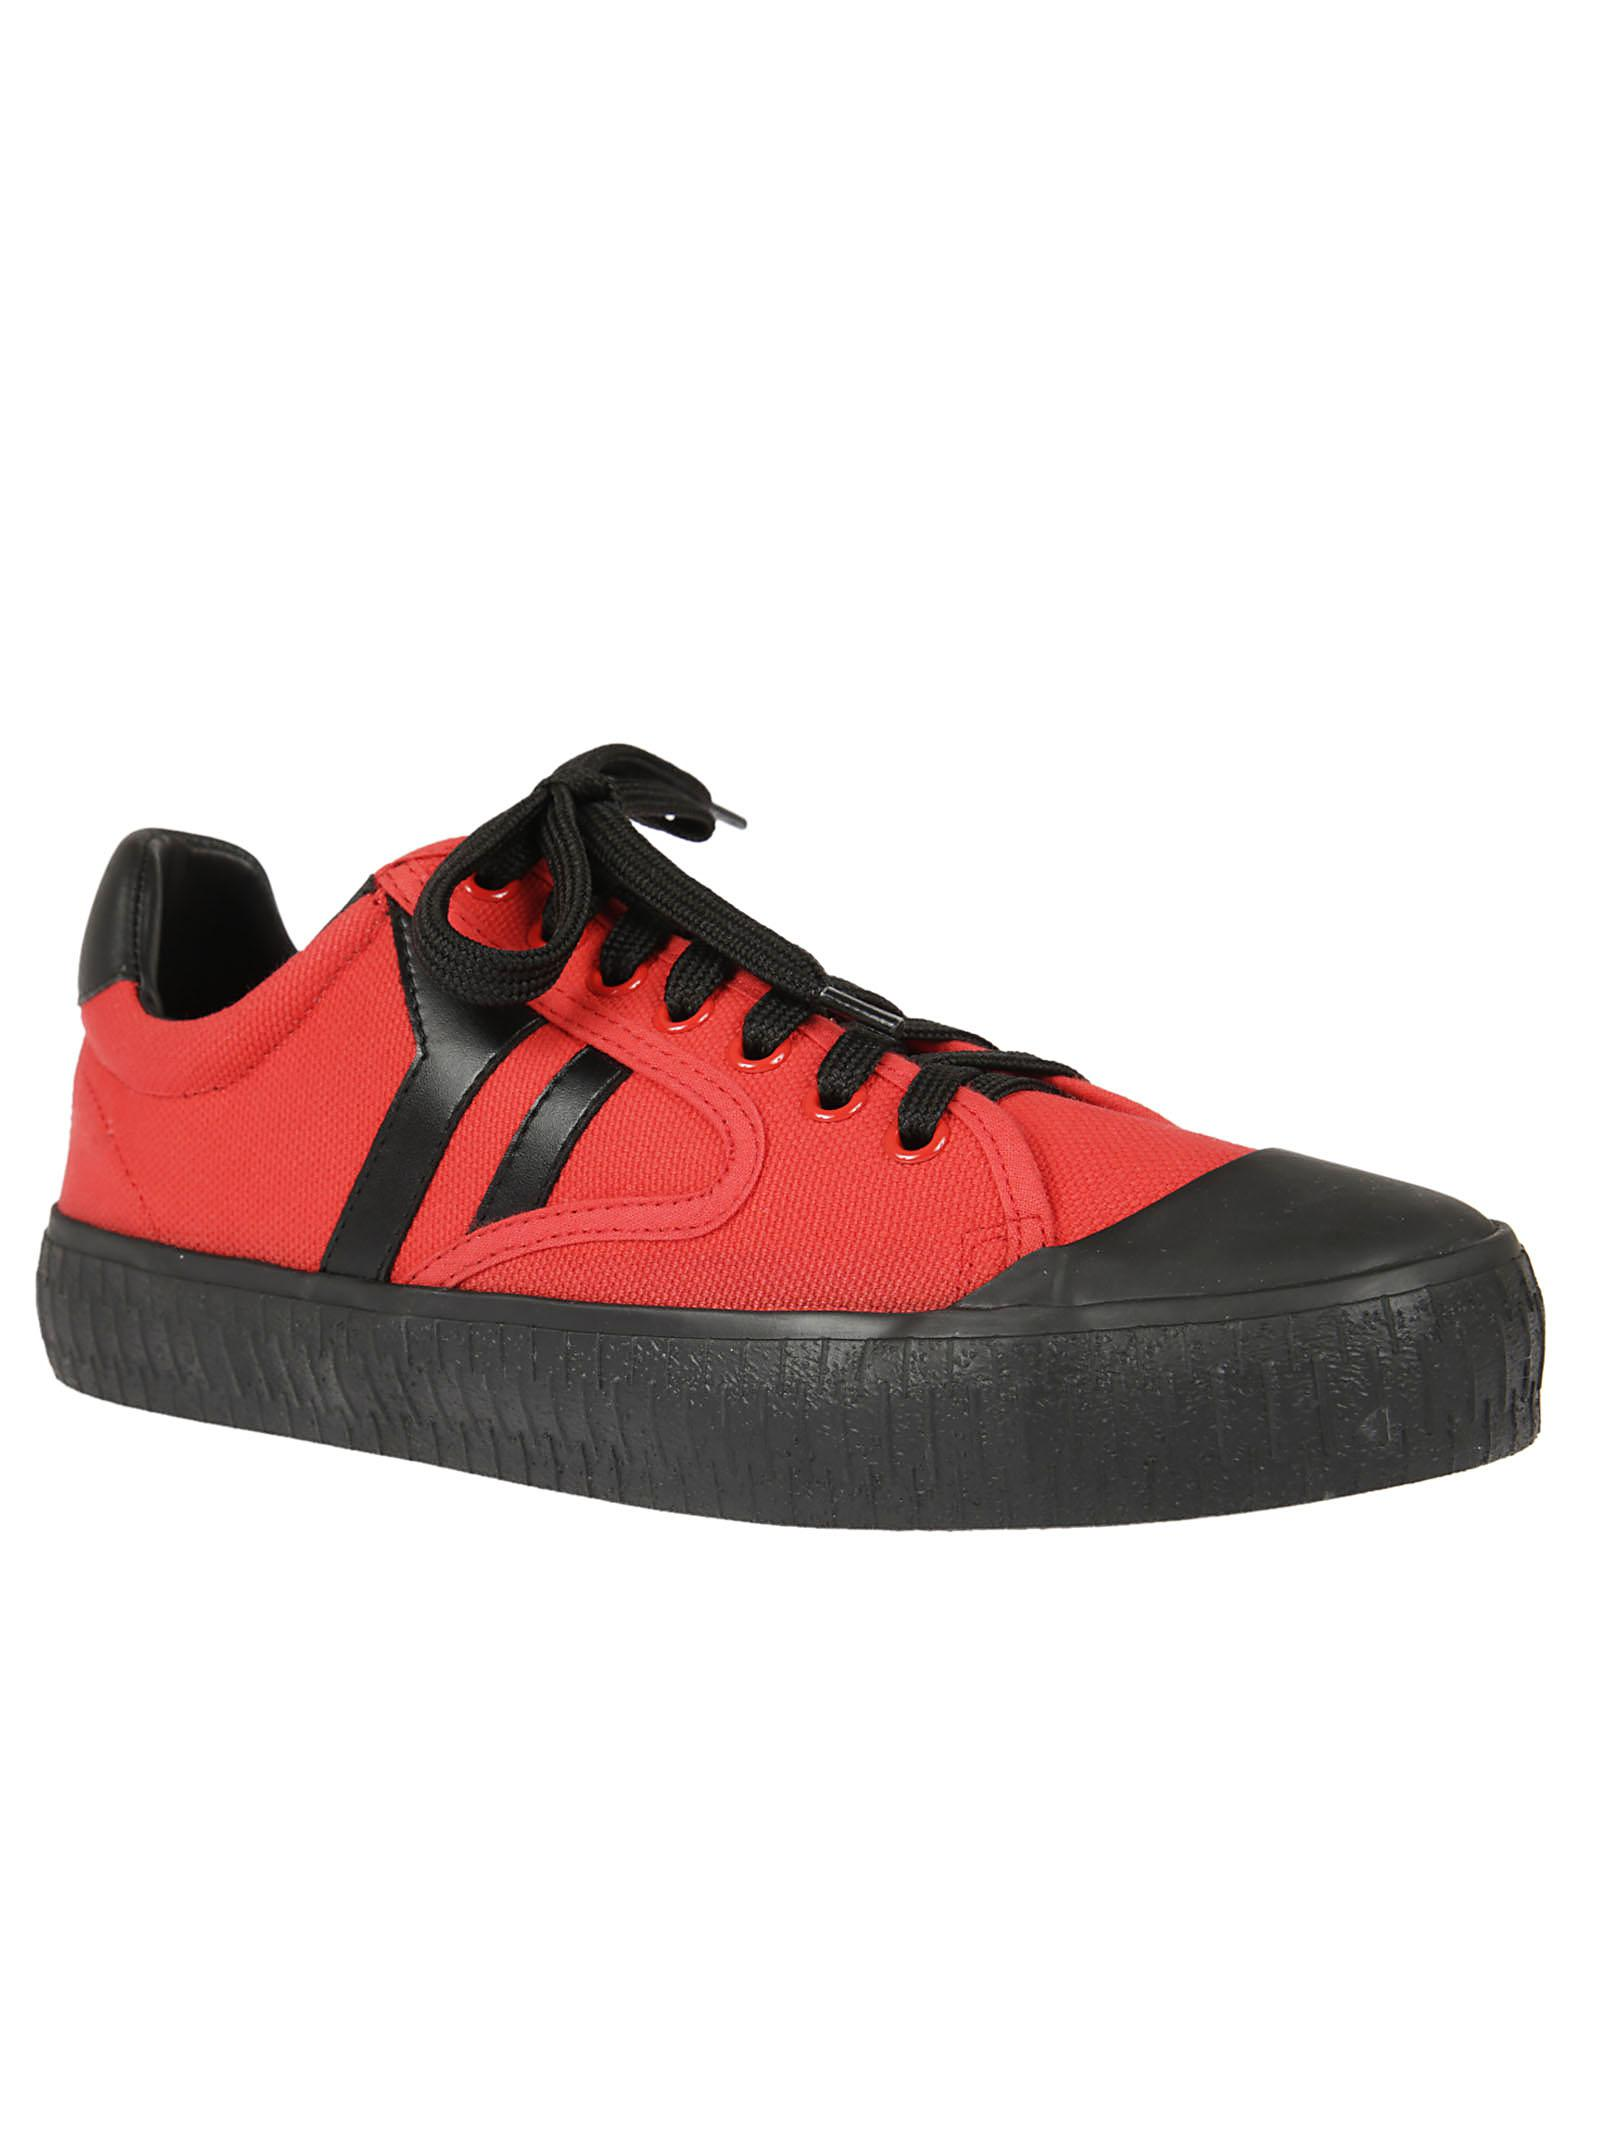 Celine Cotton Lace-up Sneakers in Red for Men